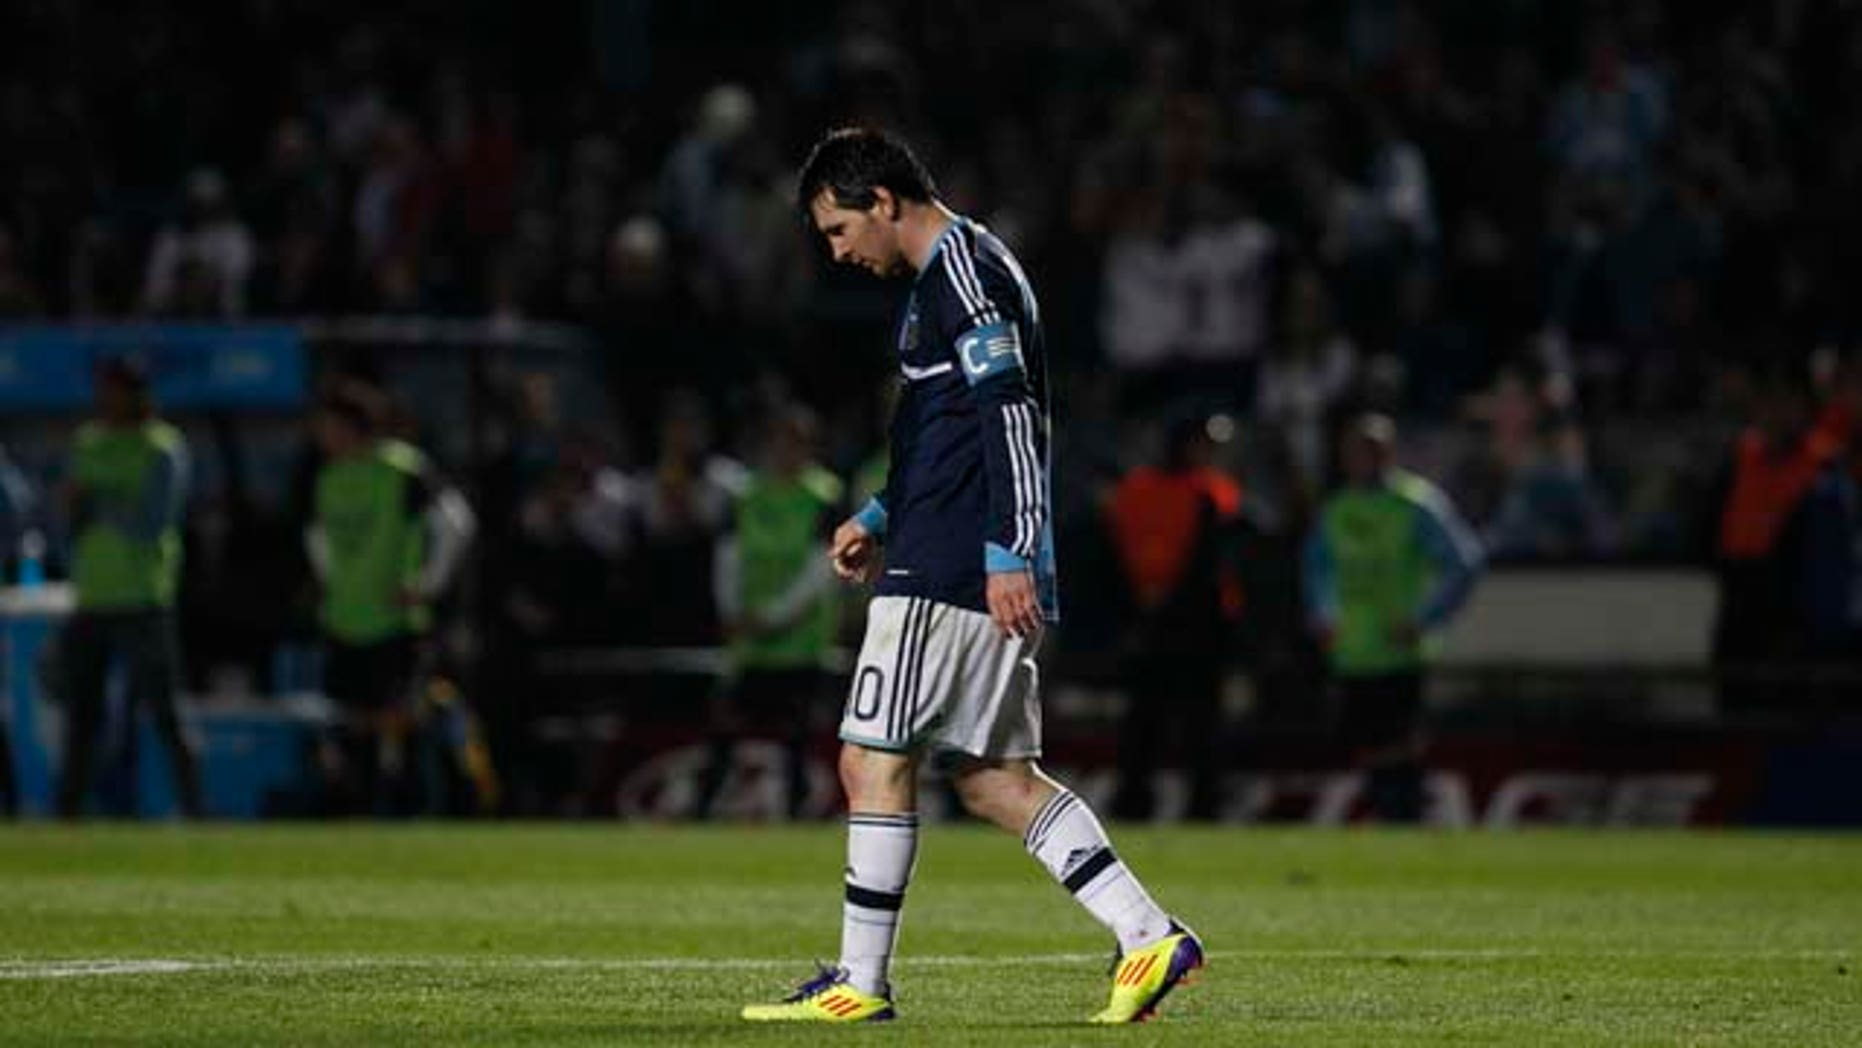 Argentina's Lionel Messi walks on the field during a Copa America quarterfinal  soccer match against Uruguay in Santa Fe, Argentina, Saturday, July 16, 2011. Uruguay advanced to the Copa America semifinals with a 5-4 victory over Argentina on penalties after a 1-1 draw. (AP Photo/Dolores Ochoa)